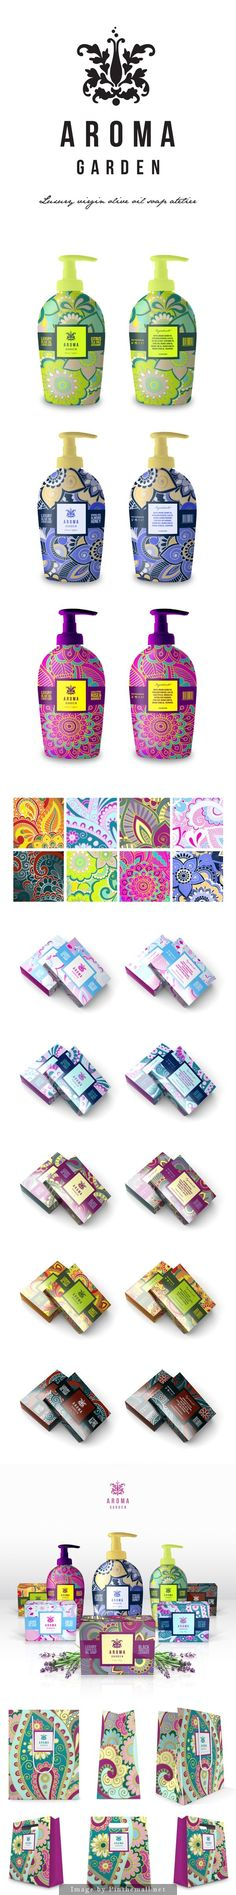 Aroma Garden Cosmetics each one is prettier than the next #packaging PD: